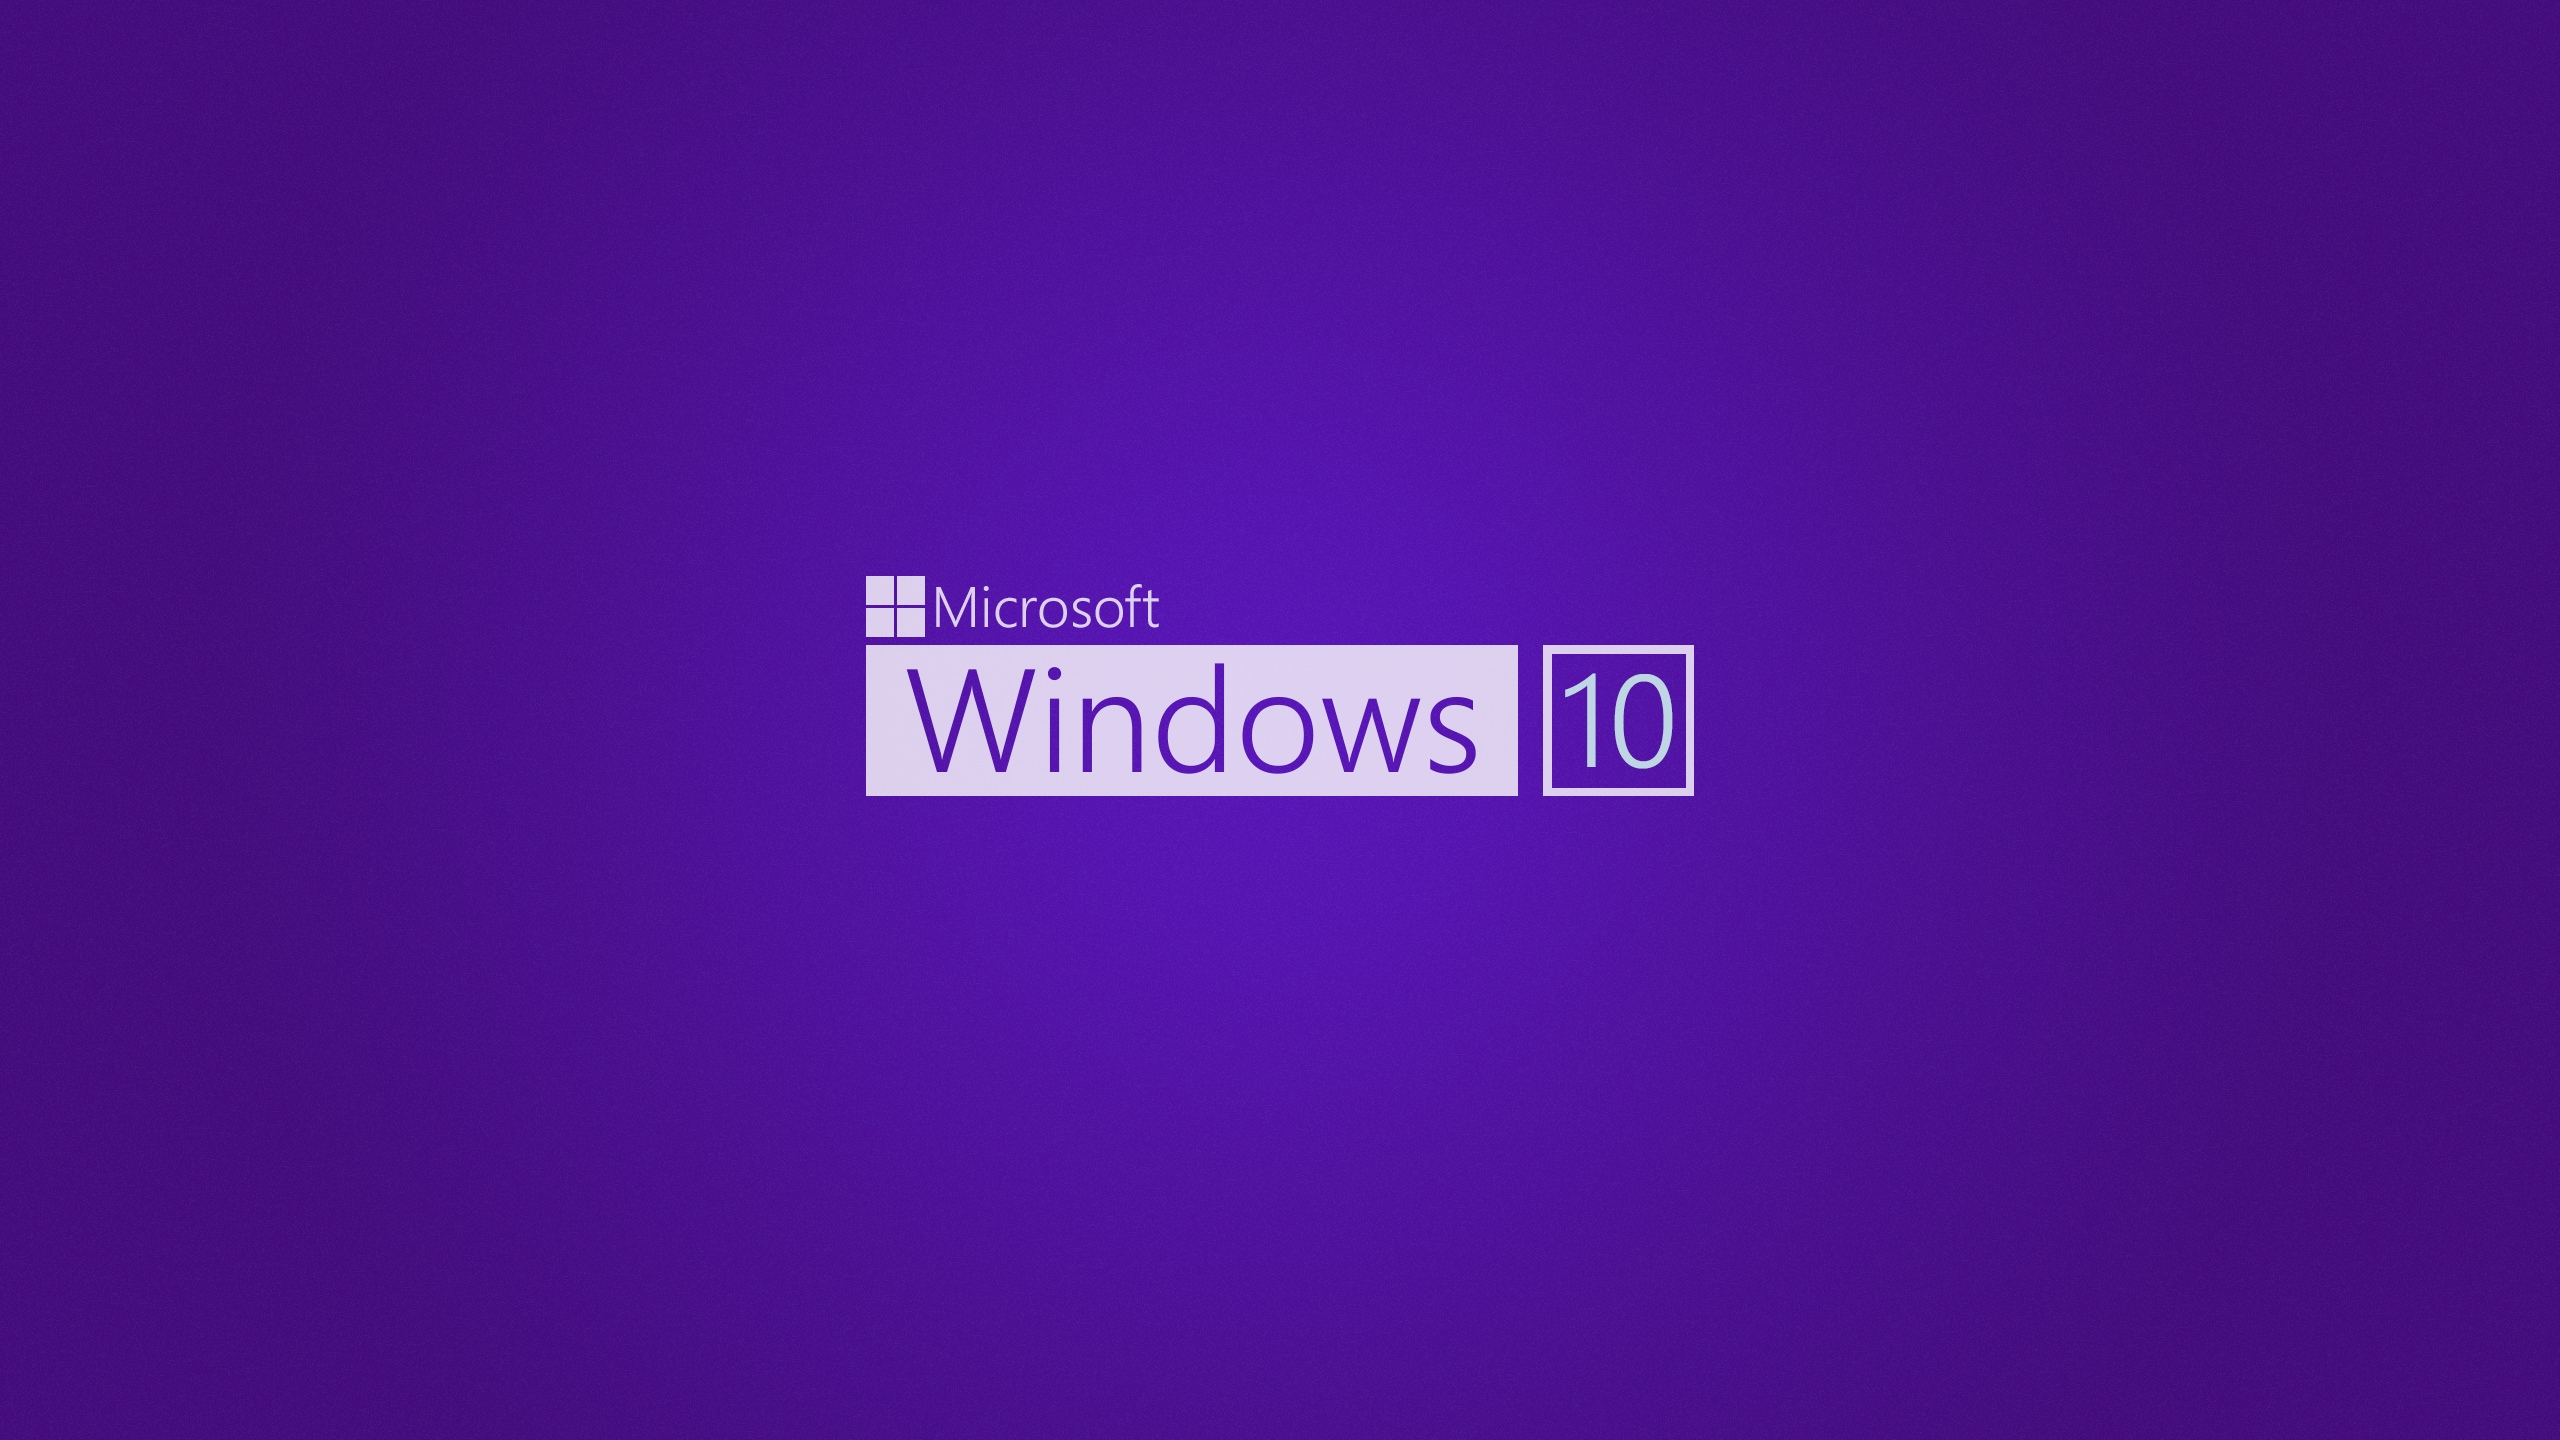 22 windows 10 wallpapers backgrounds images freecreatives for Microsoft win10